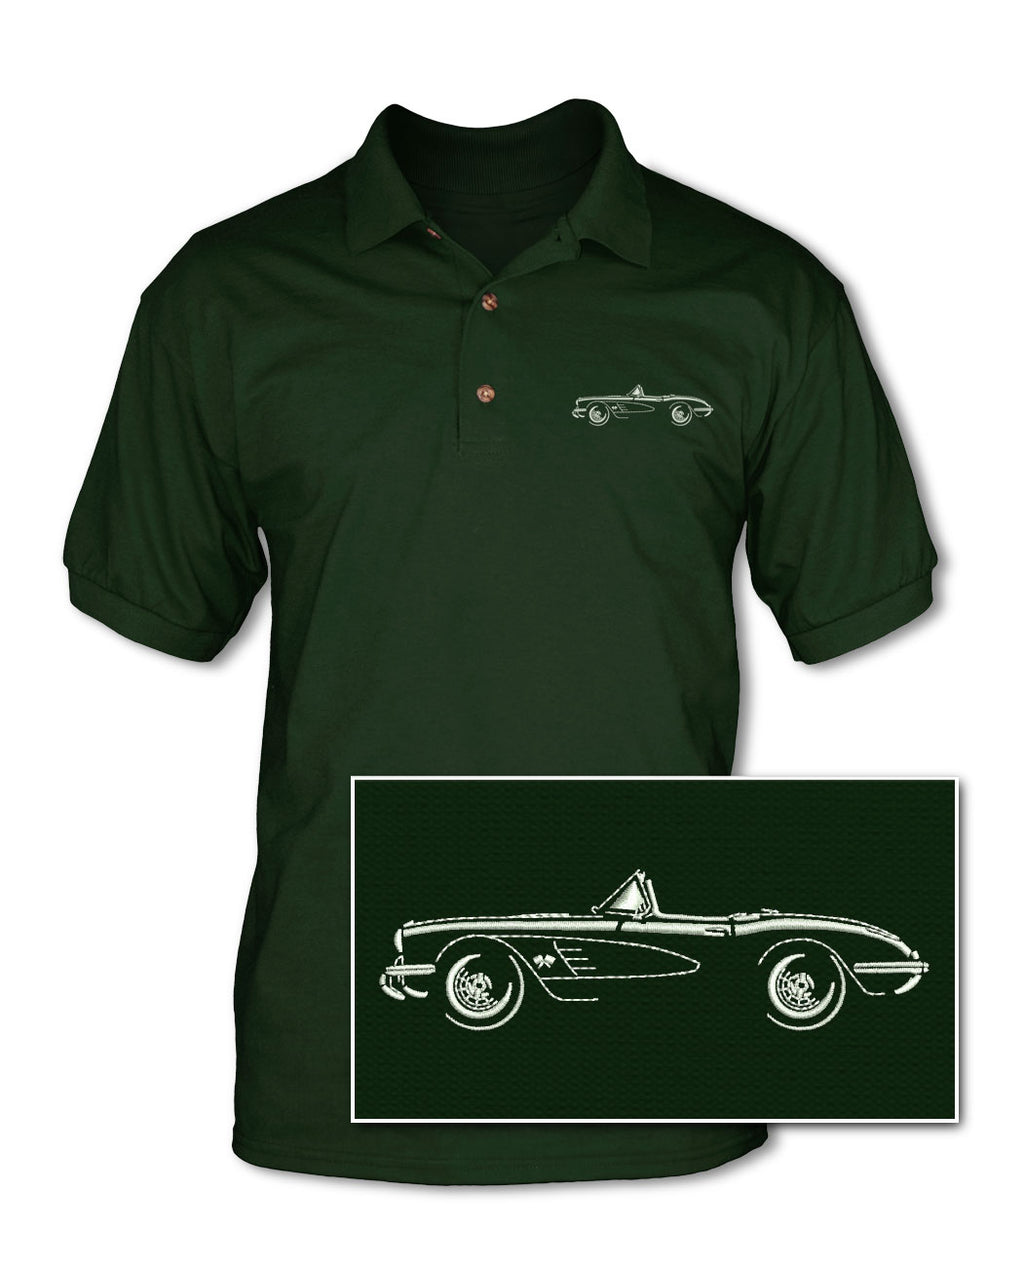 1958 Chevrolet Corvette Convertible C1 Adult Pique Polo Shirt - Side View